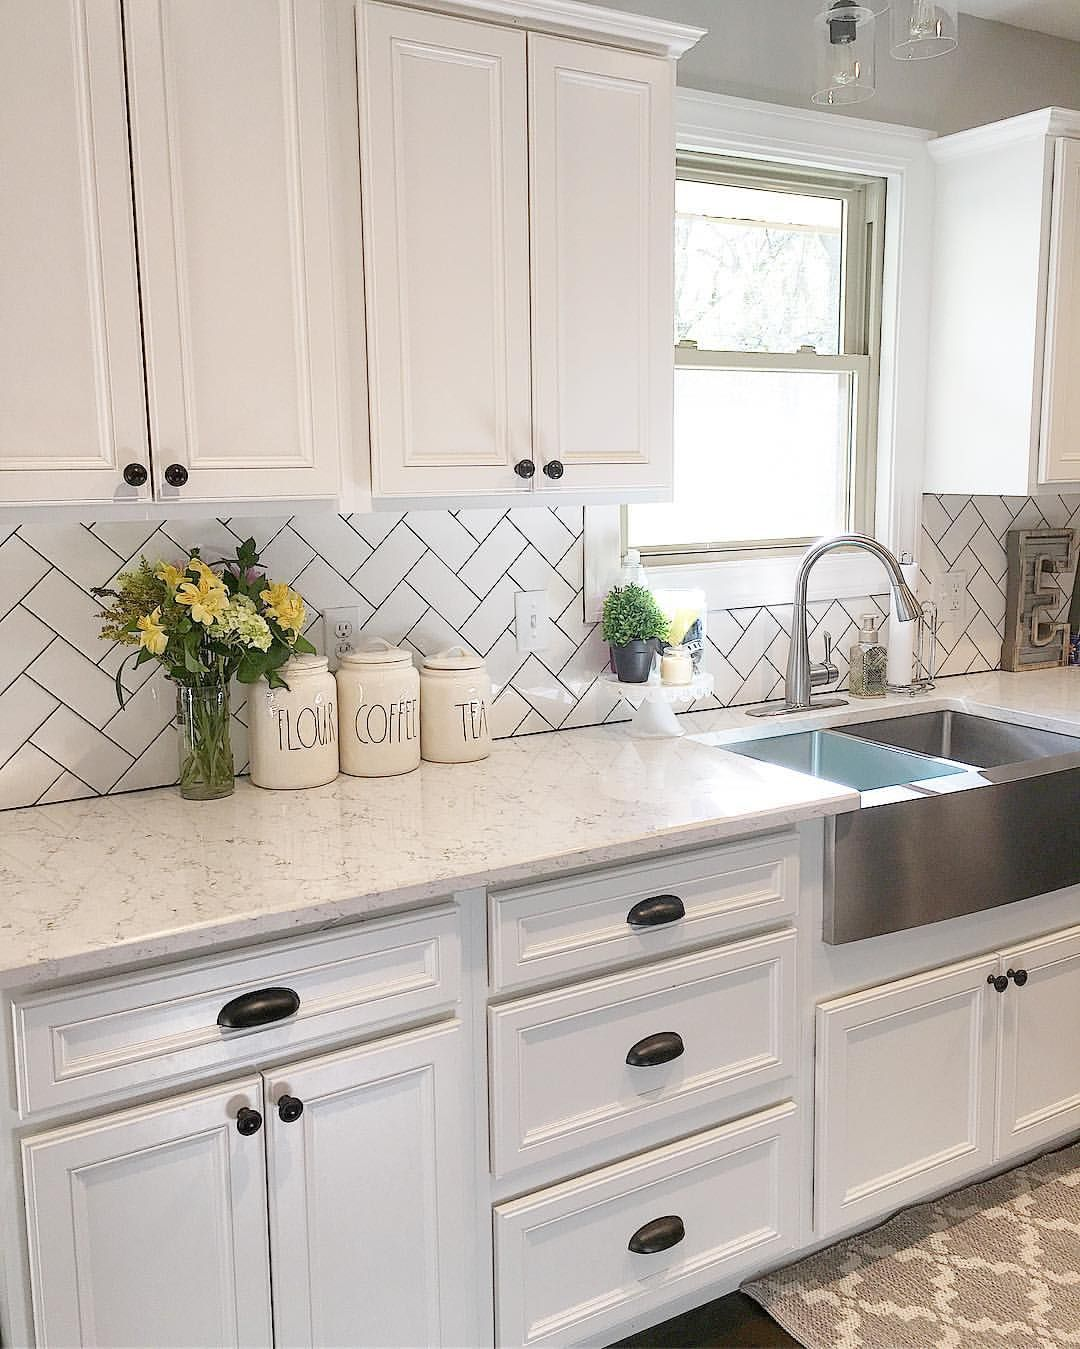 Farmhouse Kitchen Cabinets: White Kitchen, Kitchen Decor, Subway Tile, Herringbone